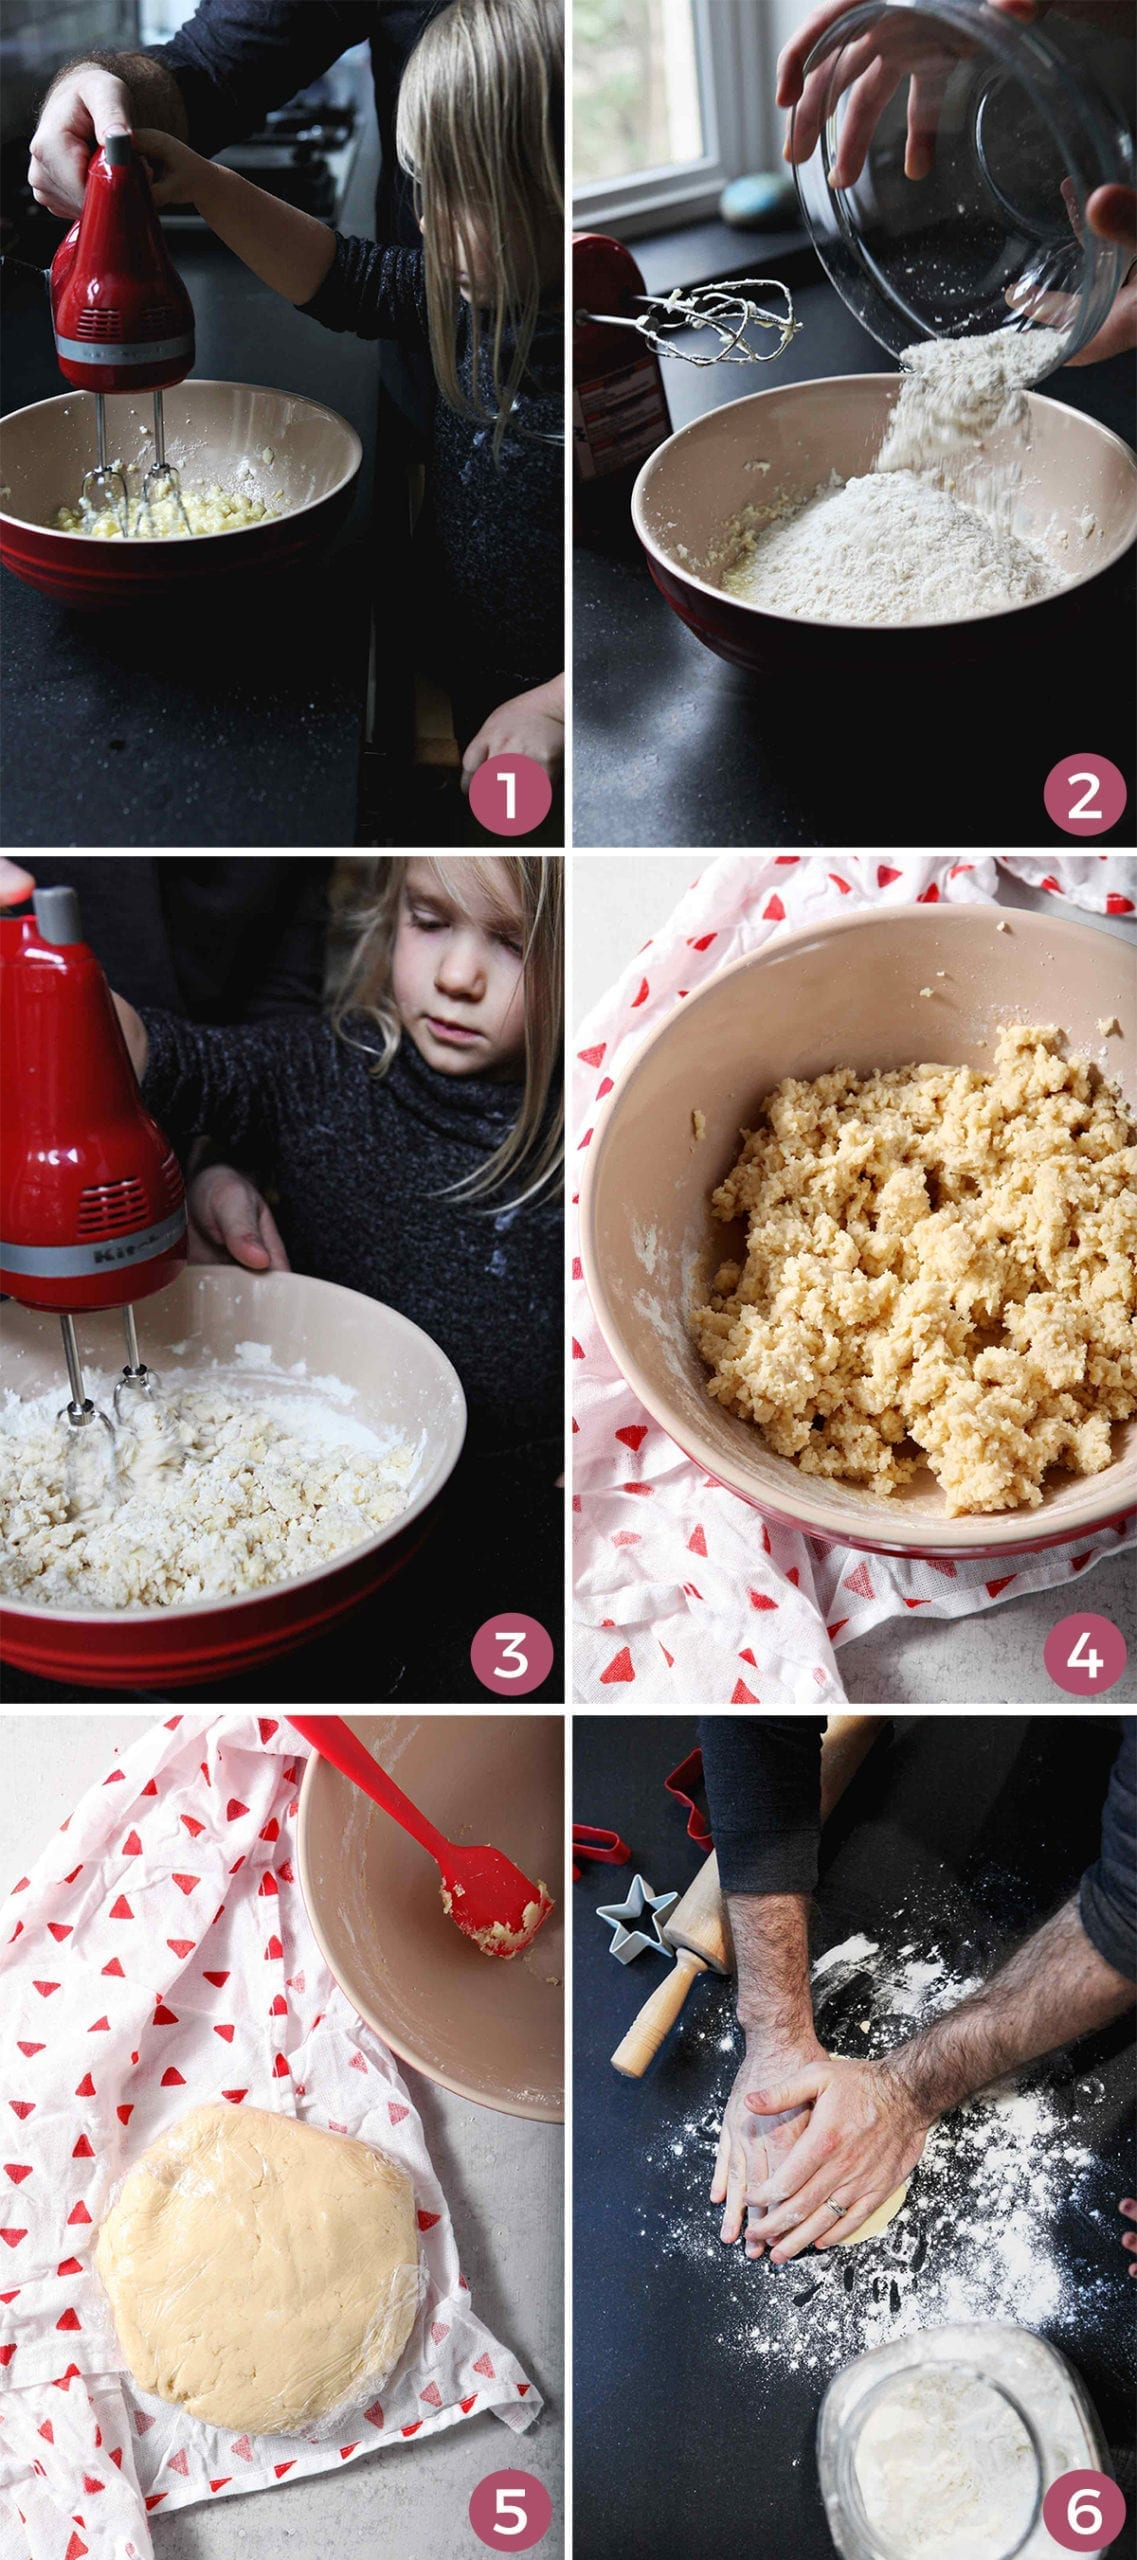 A collage of six images shows how to mix and form the cookies before they are baked